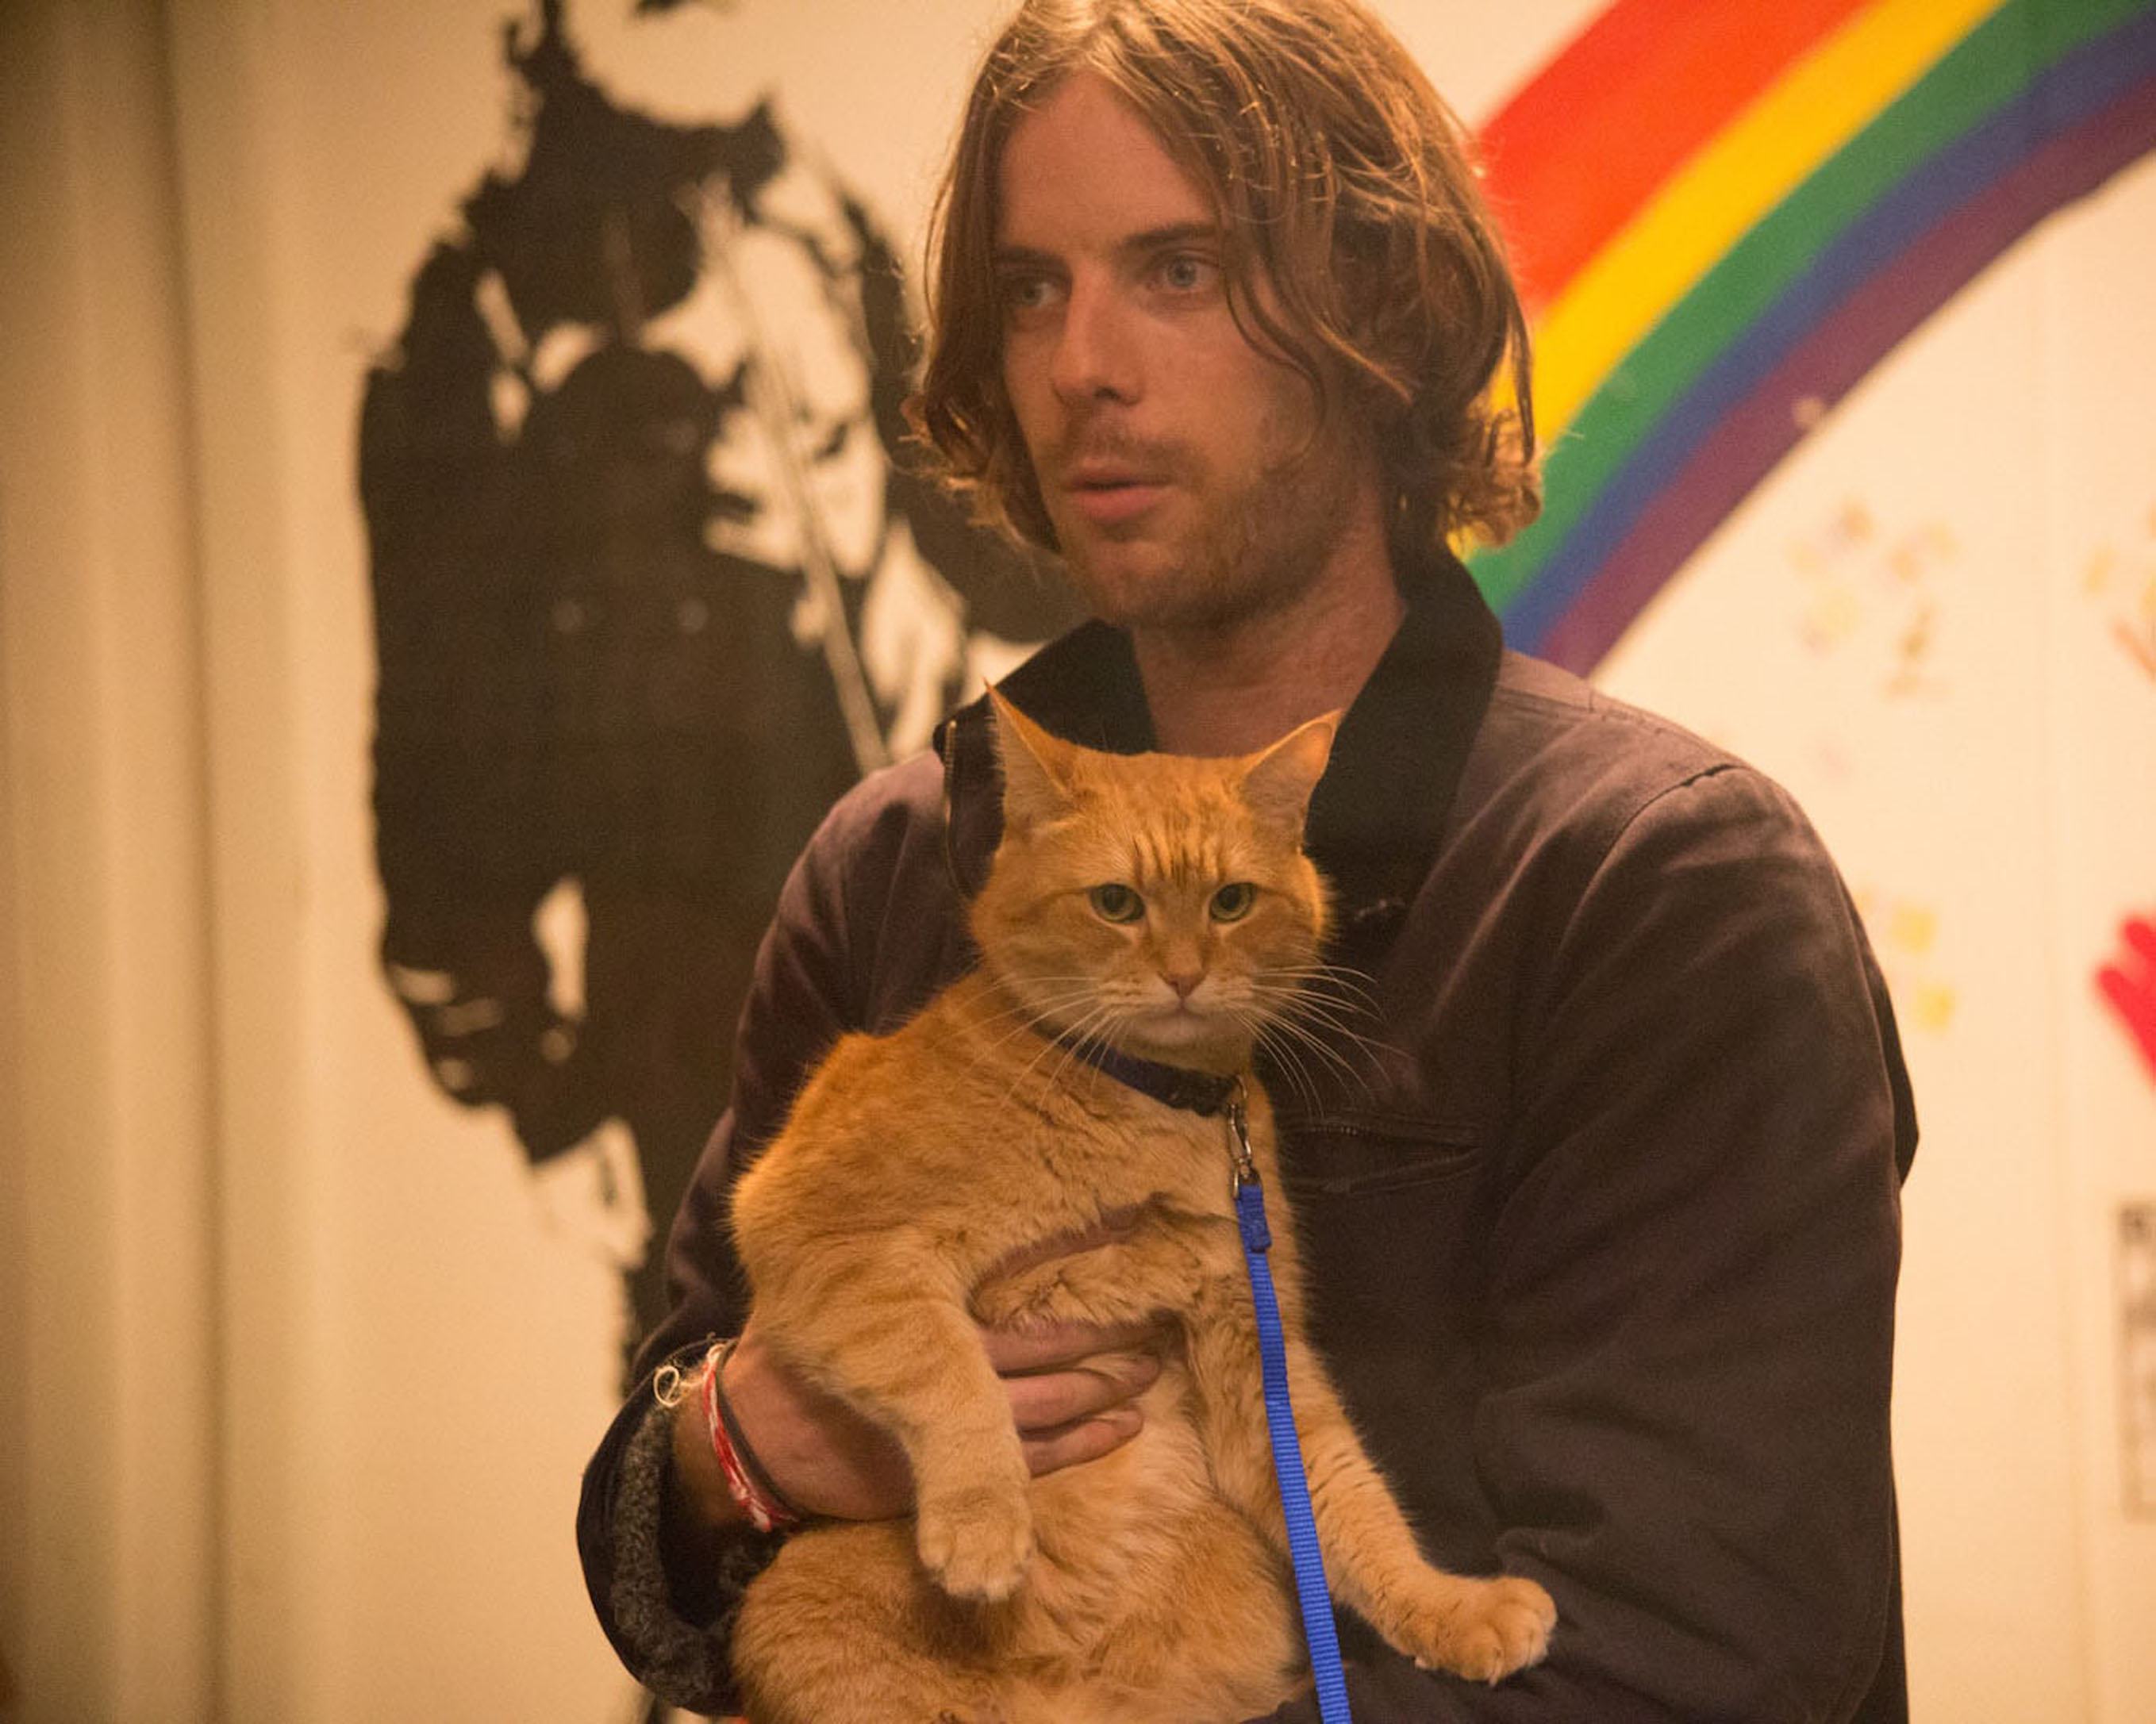 Bob, Luke Treadaway (James). Director and Co-producer Roger Spottiswoode. Producer Adam Rolston of Shooting Script Films. Screenplay adapted by Tim John and Maria Nation; based on the International Best Selling book A Street Cat Named Bob.